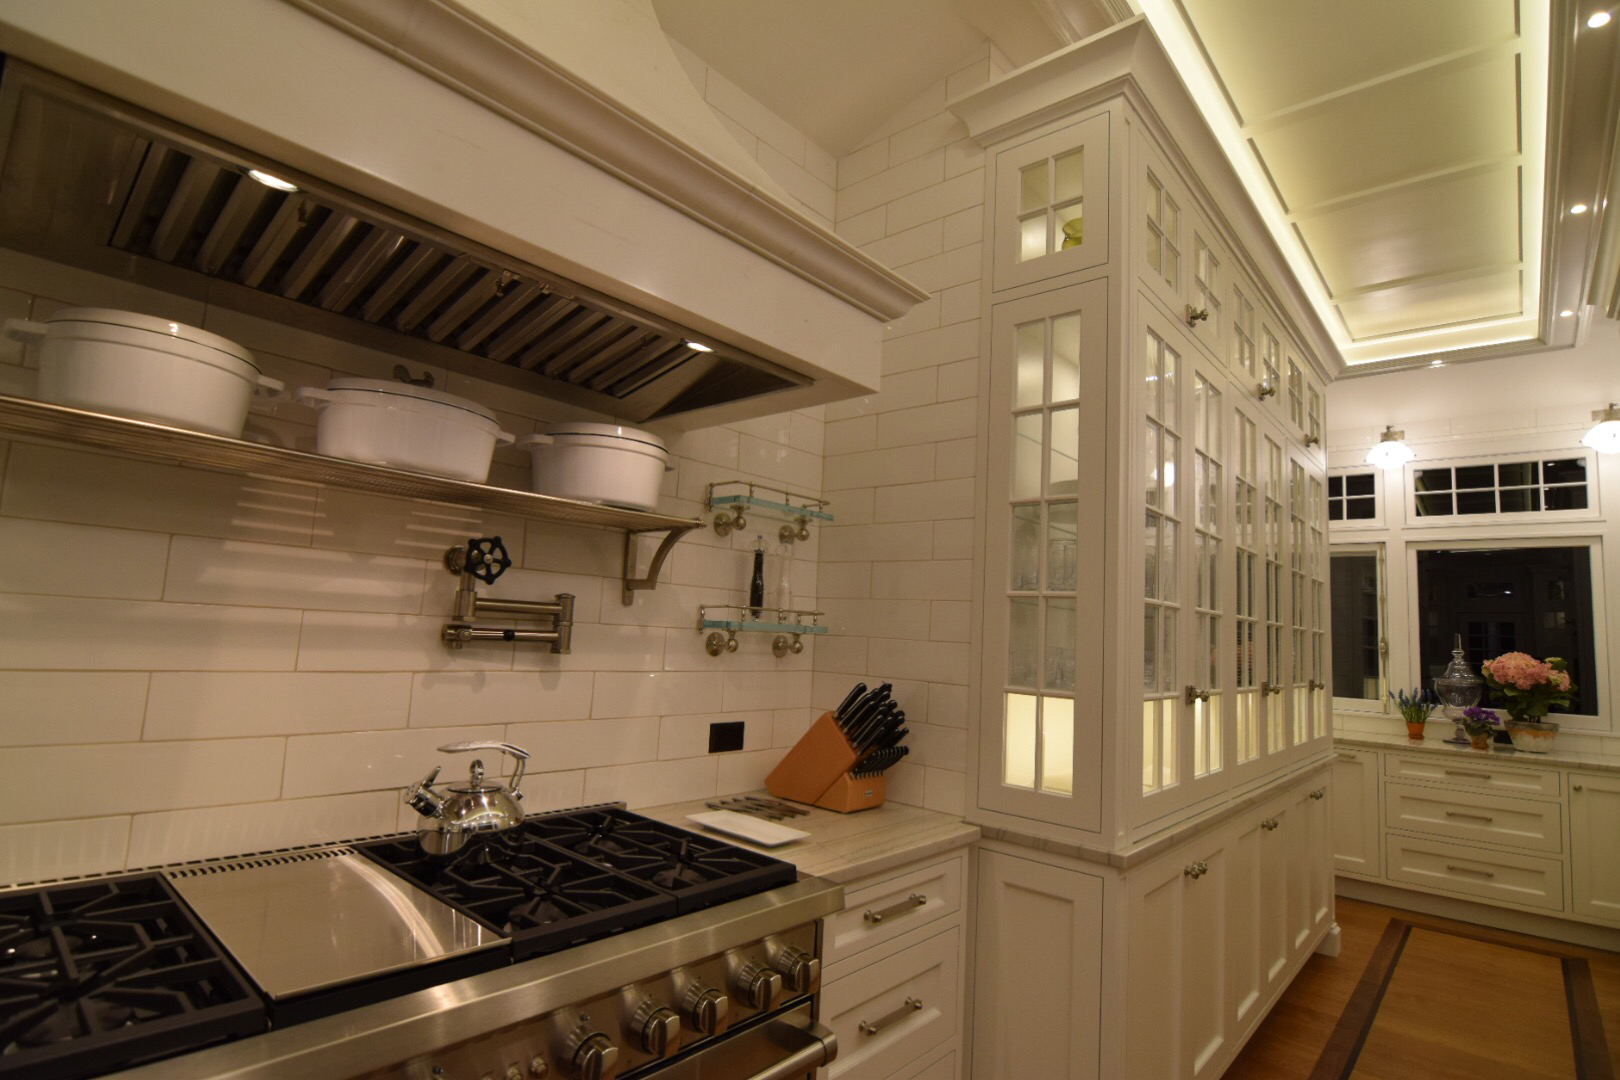 face-frame-with-inset-cabinet-doors-solid-and-true-divider-lights.jpg